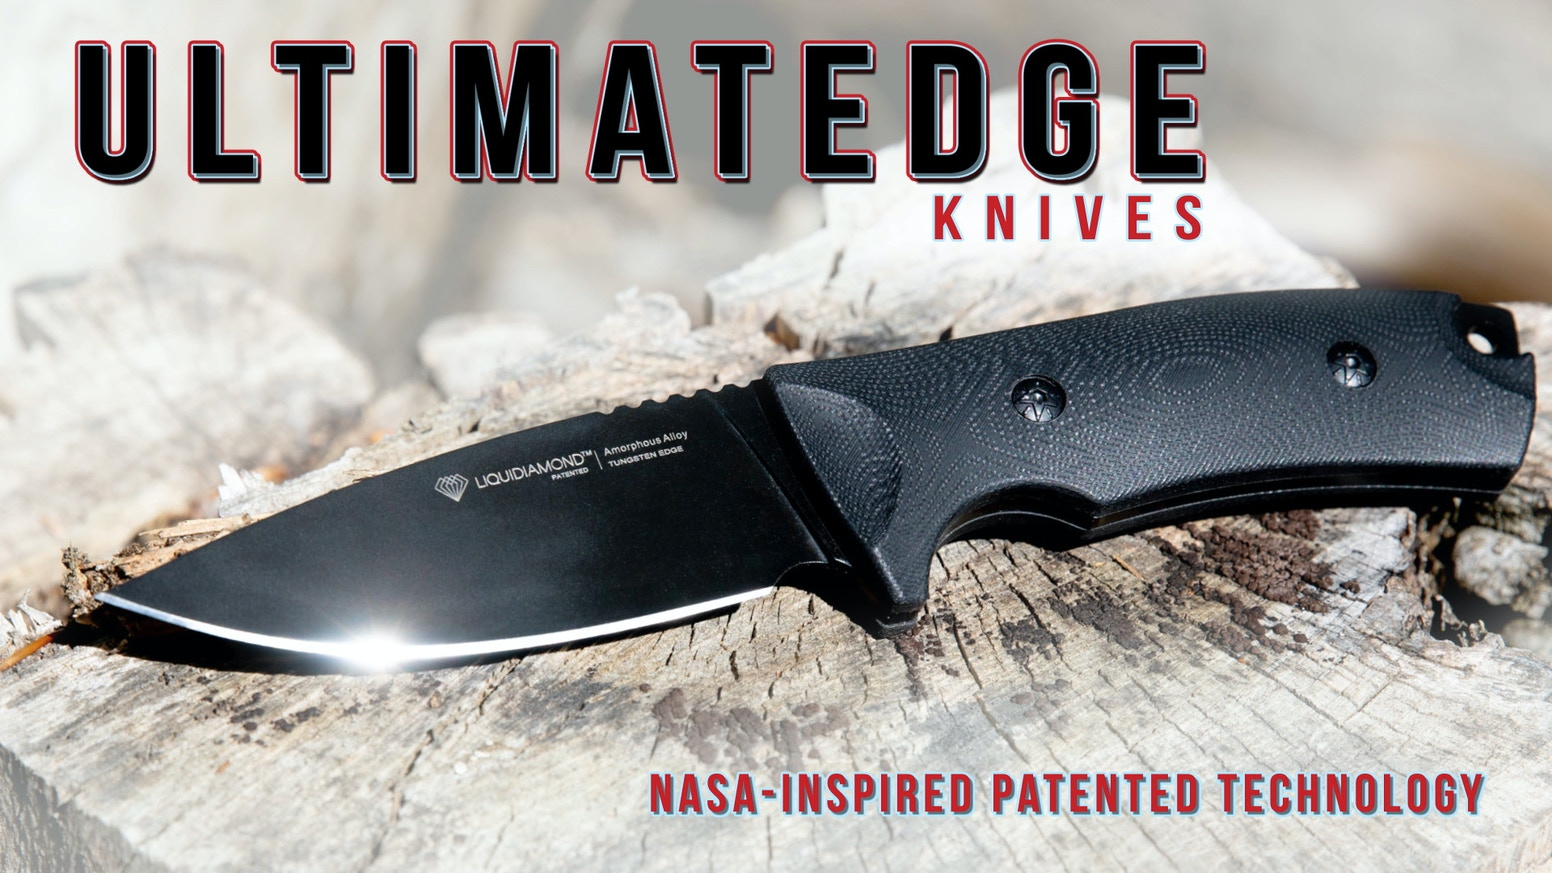 A Bushcraft & Survival knife featuring an edge of patented metal alloy matrix pioneered by NASA plus the superb strength of tungsten.